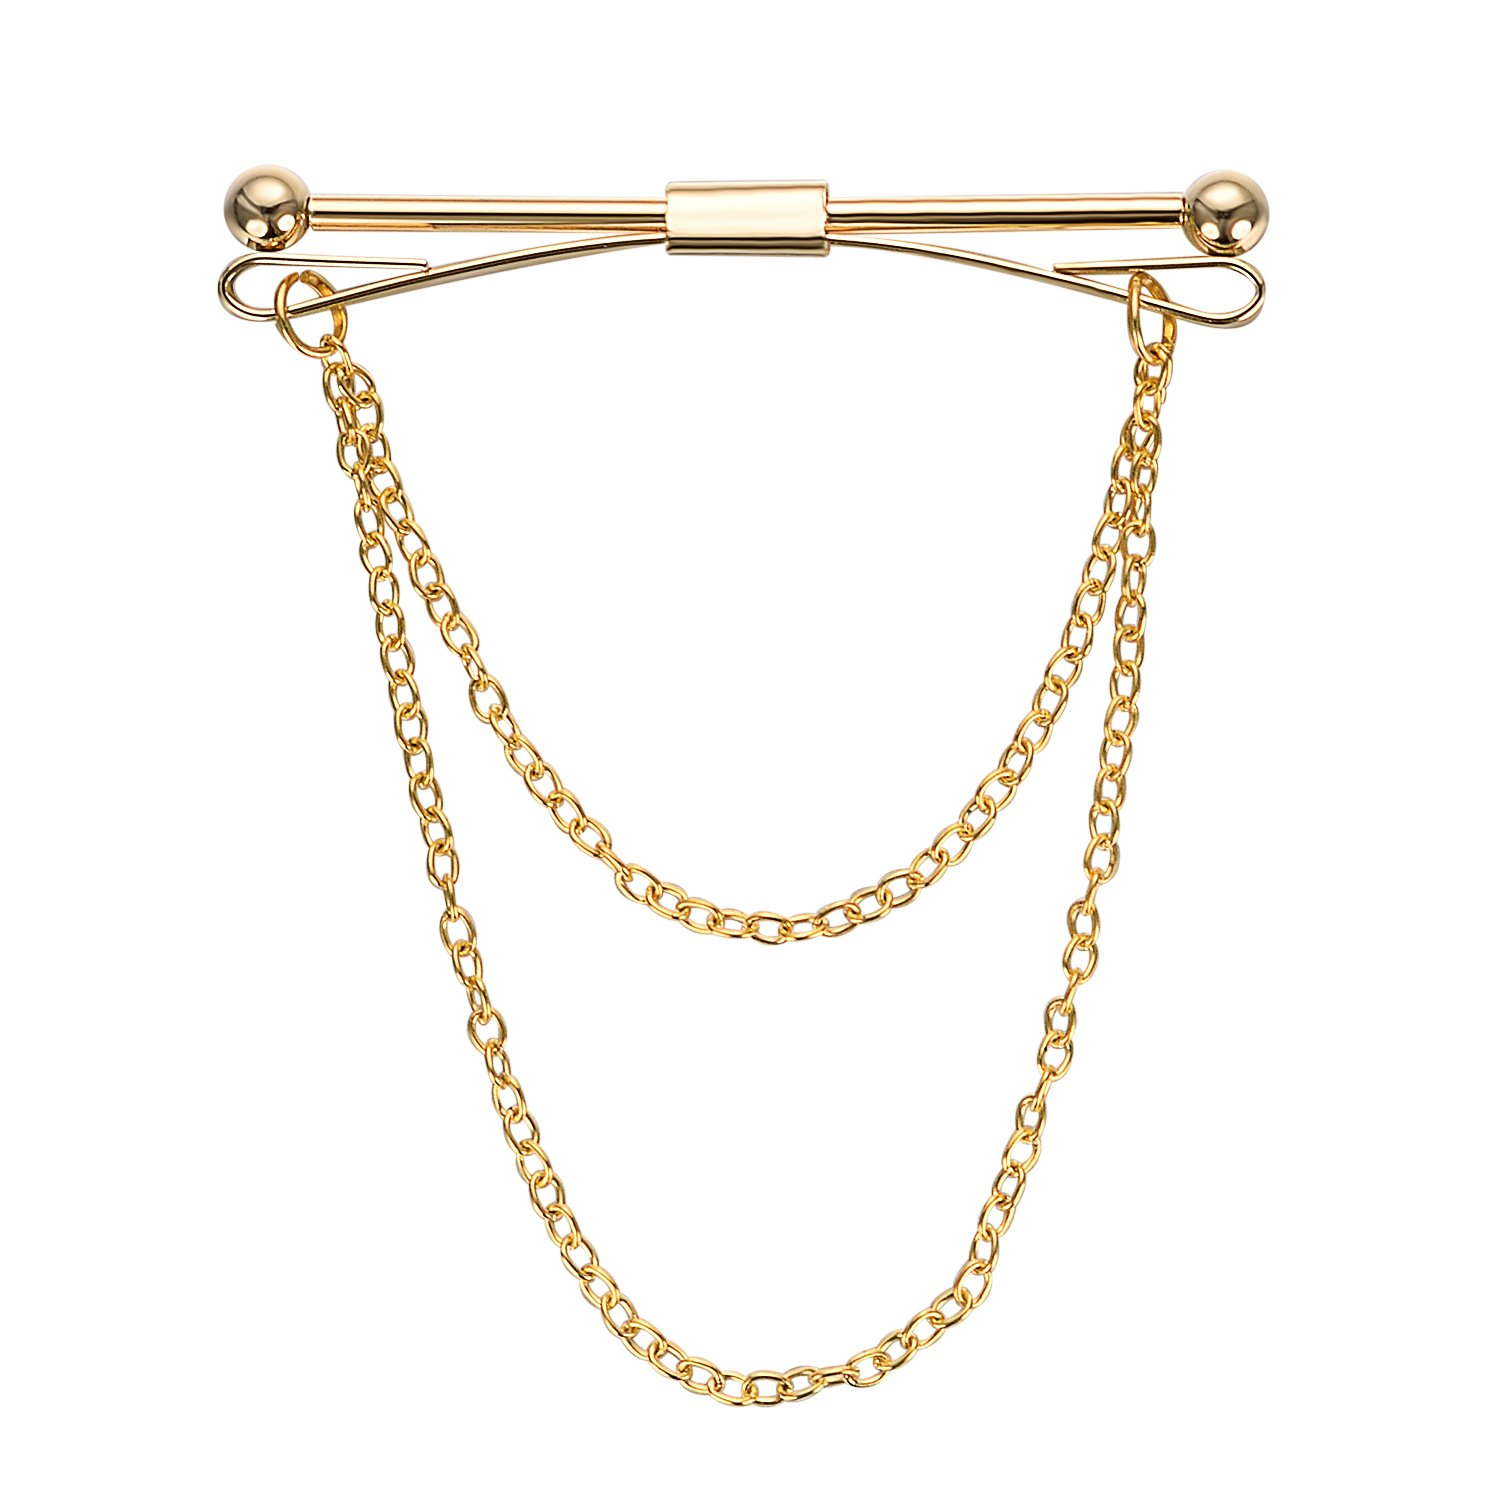 Yoursfs 18K Gold Plated Tie Chain Clip Single Loop Tie Chain Set for Men Best Gift Personalized